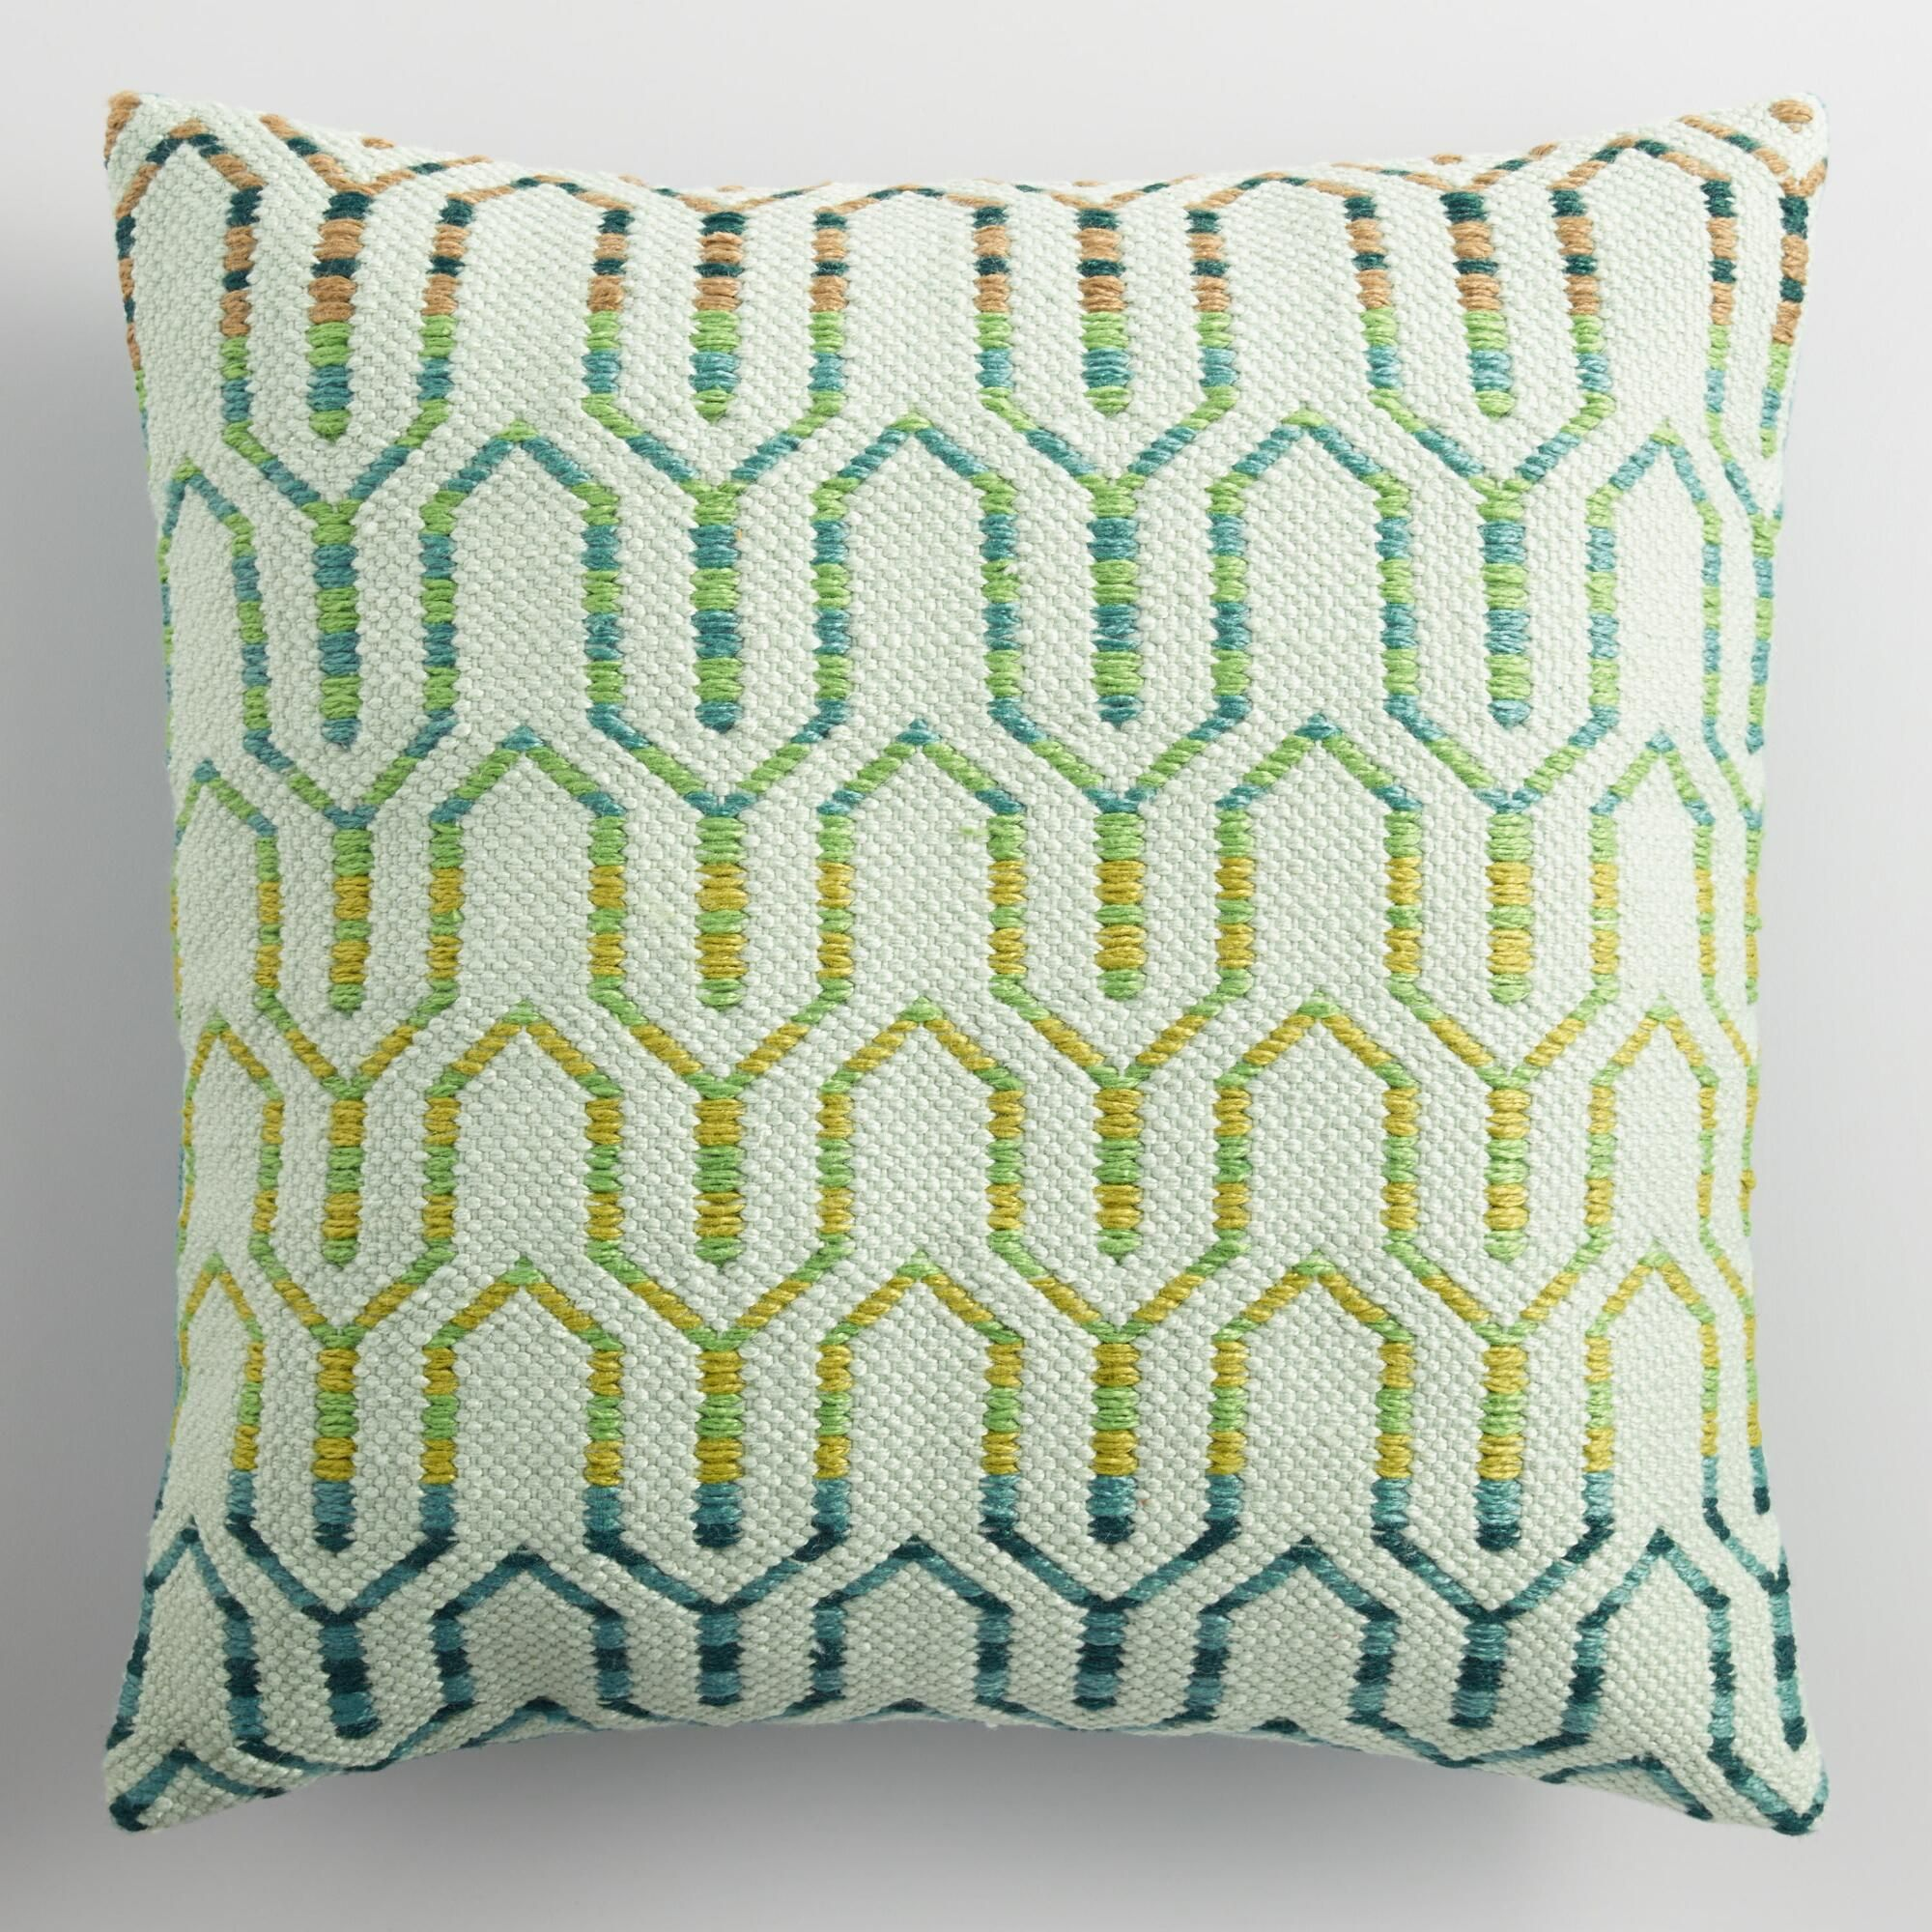 Cool geometric embroidered indoor outdoor throw pillow plastic